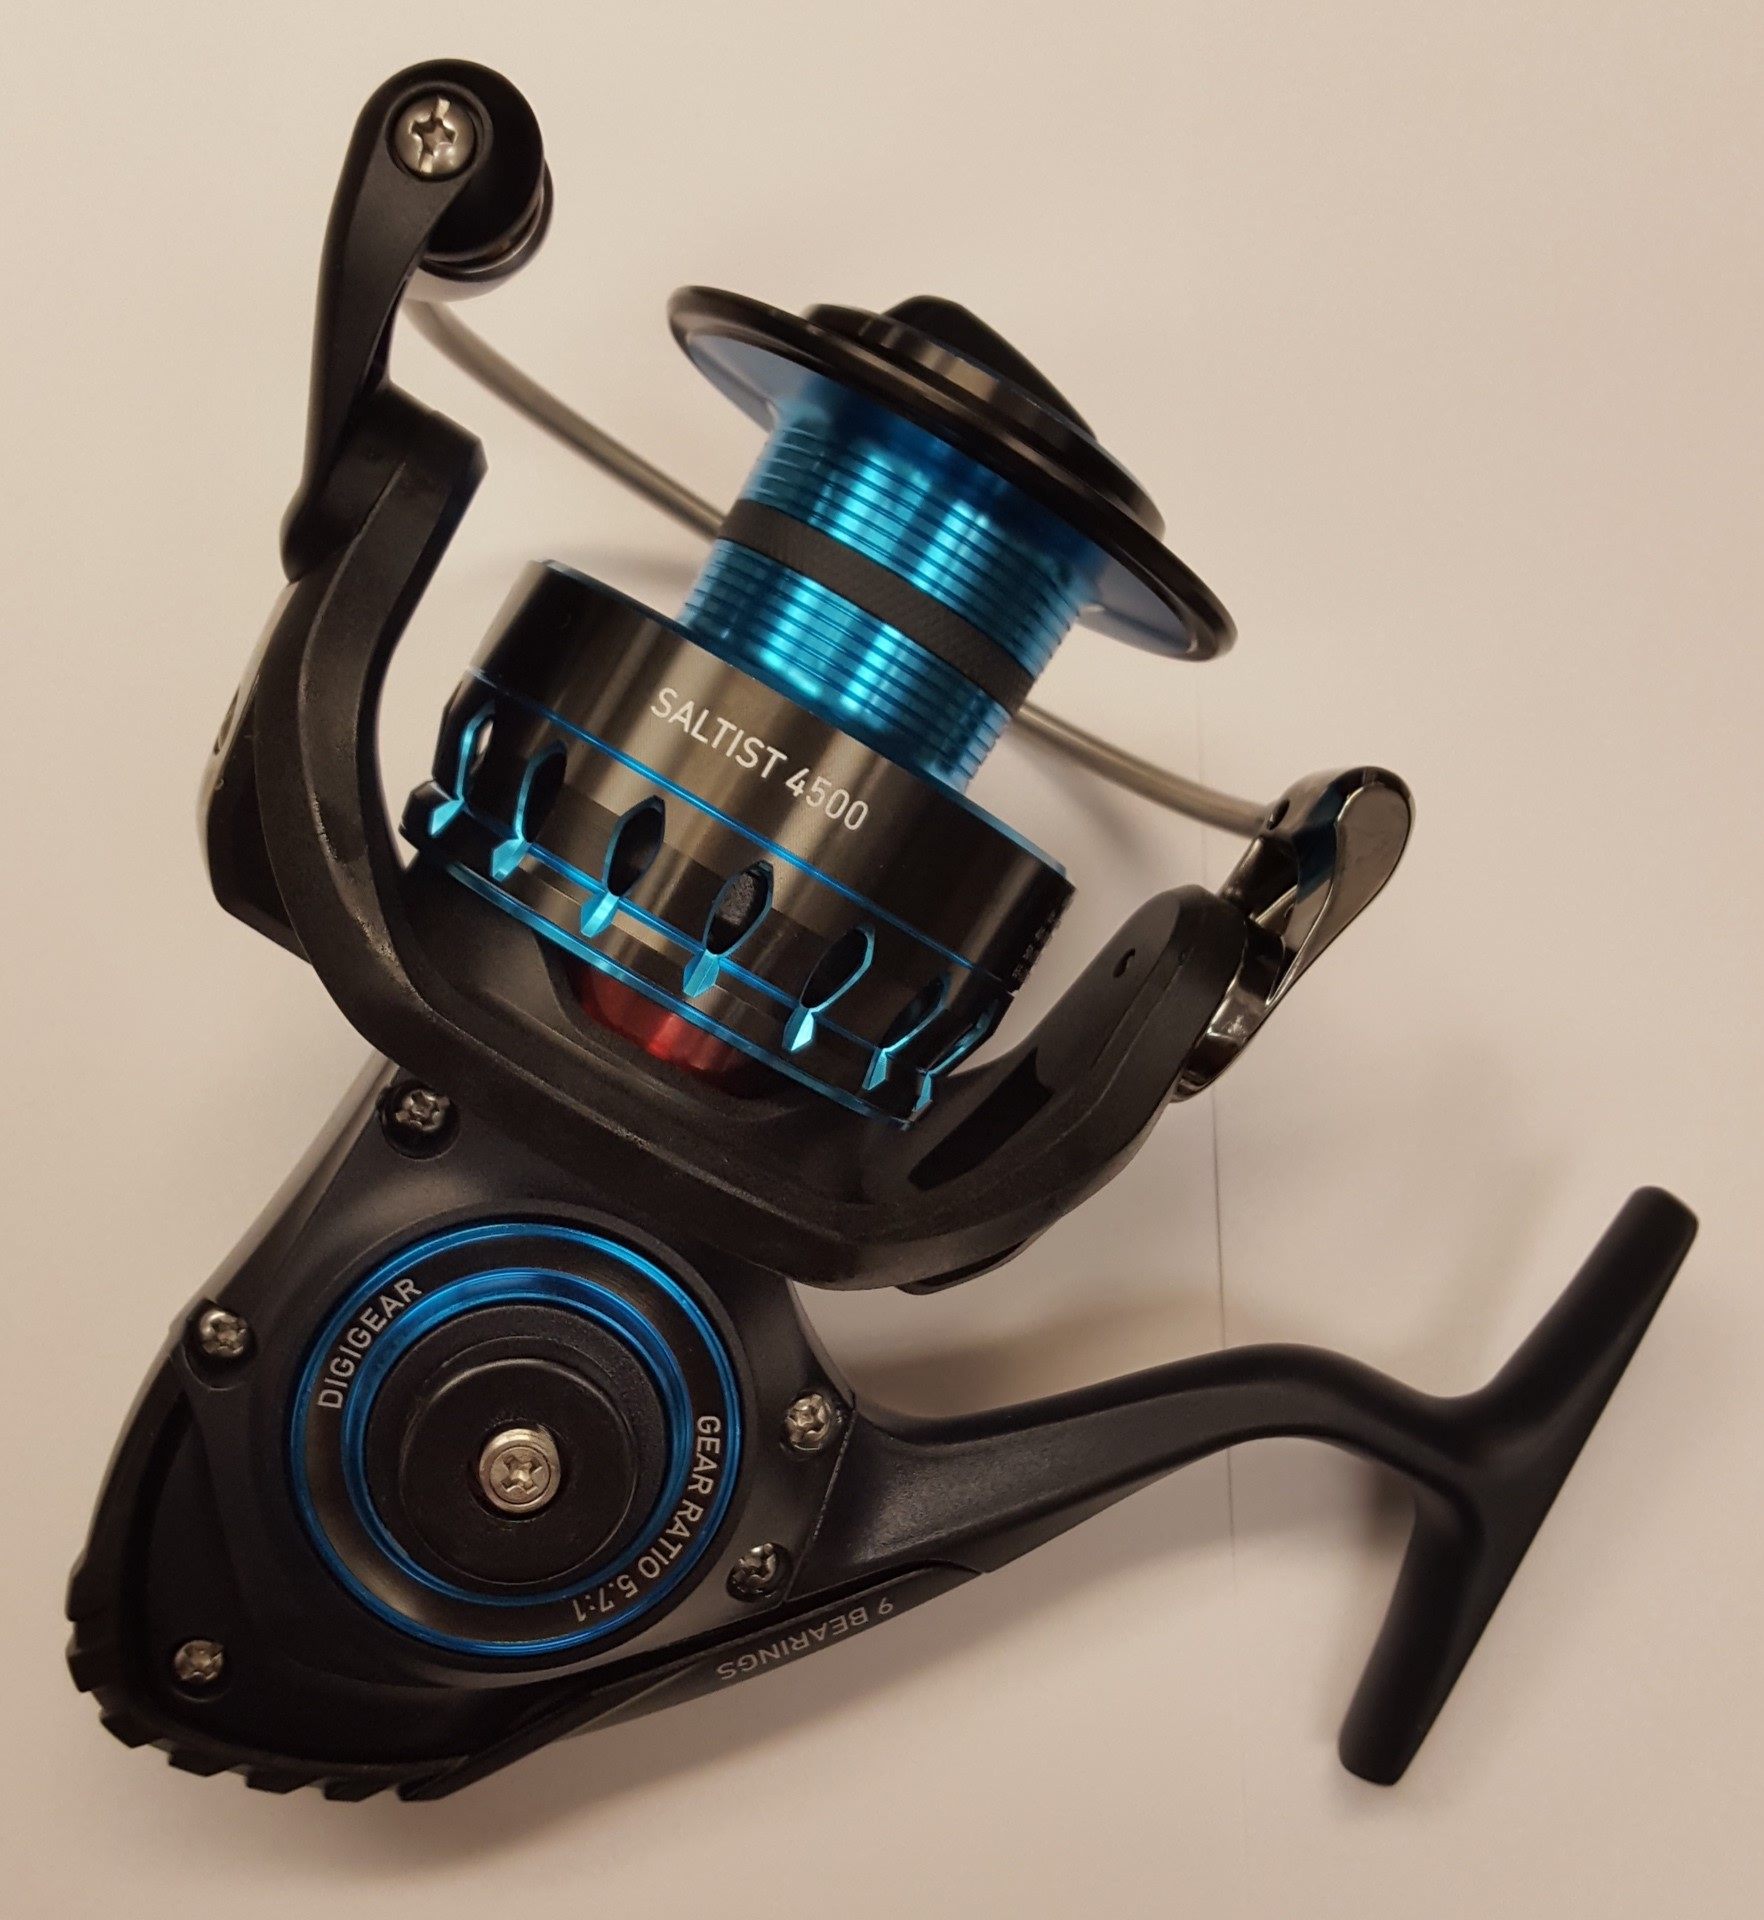 Daiwa saltist 4500 5 7 1 saltwater spinning fishing reel for Daiwa fishing reels